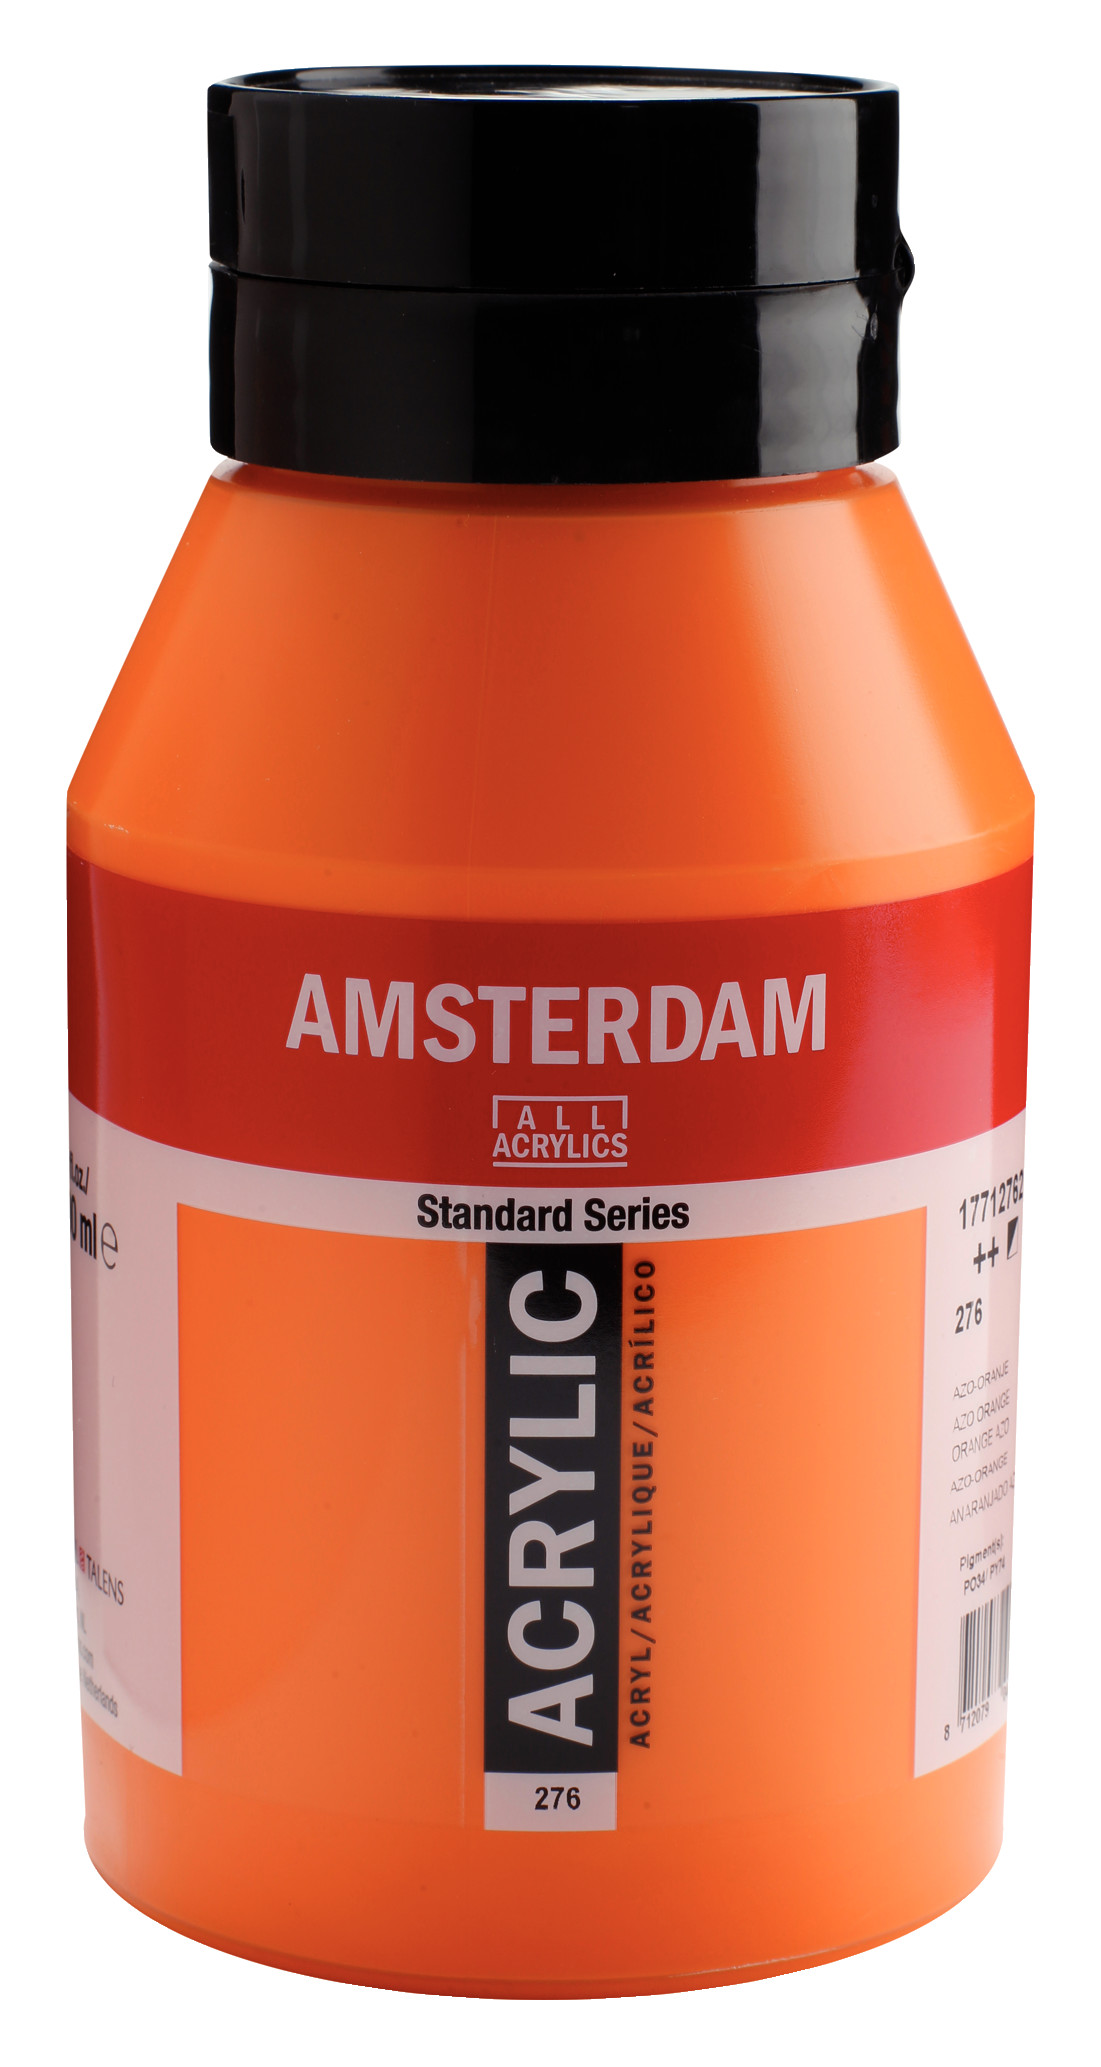 Amsterdam Standard Series Acrylic Jar 1000 ml Azo orange 276